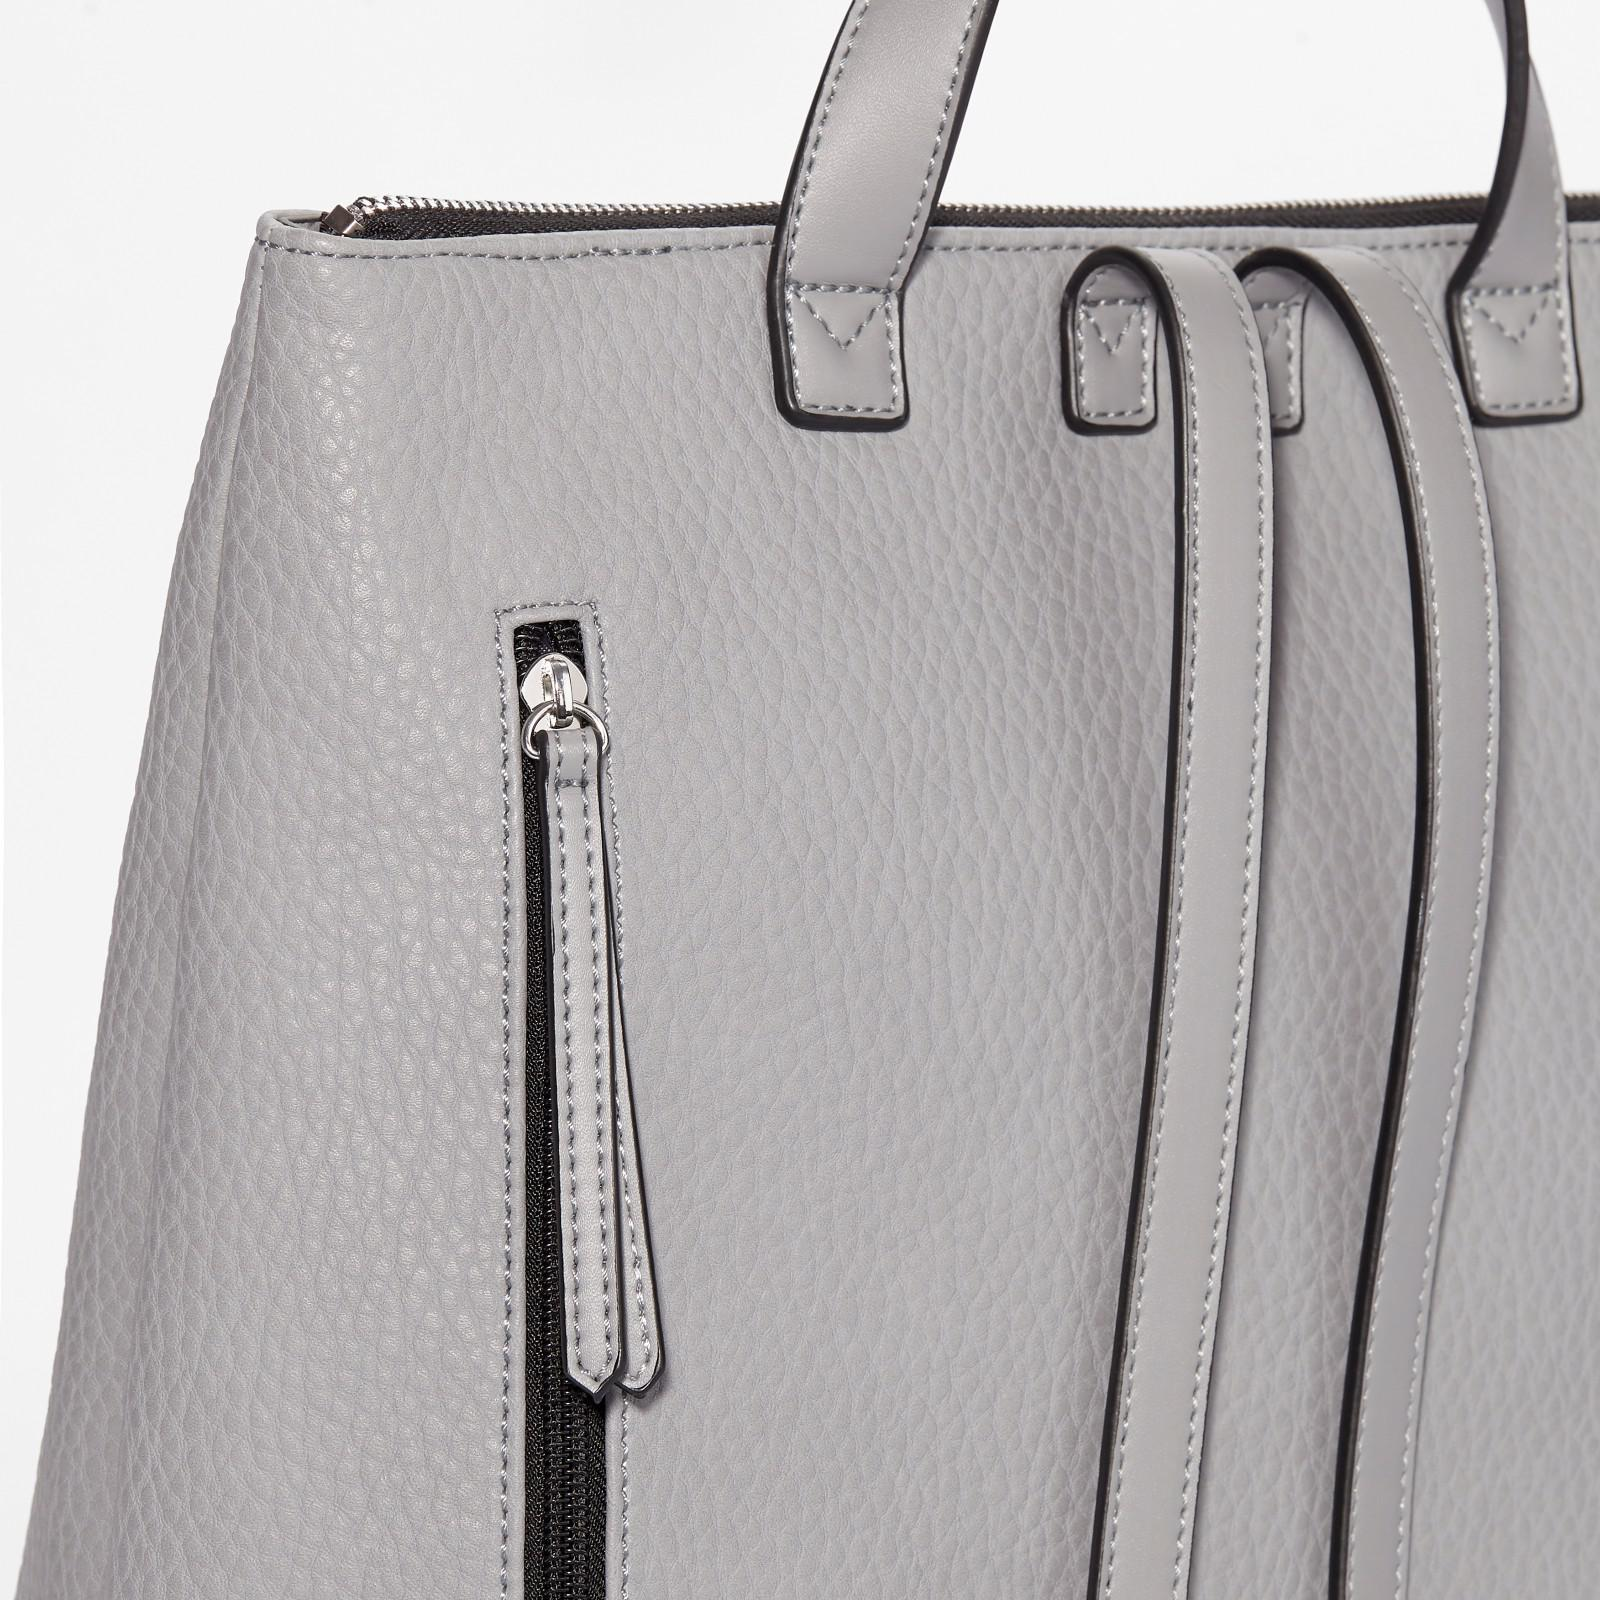 Fiorelli Lexi Backpack in Gray - Lyst